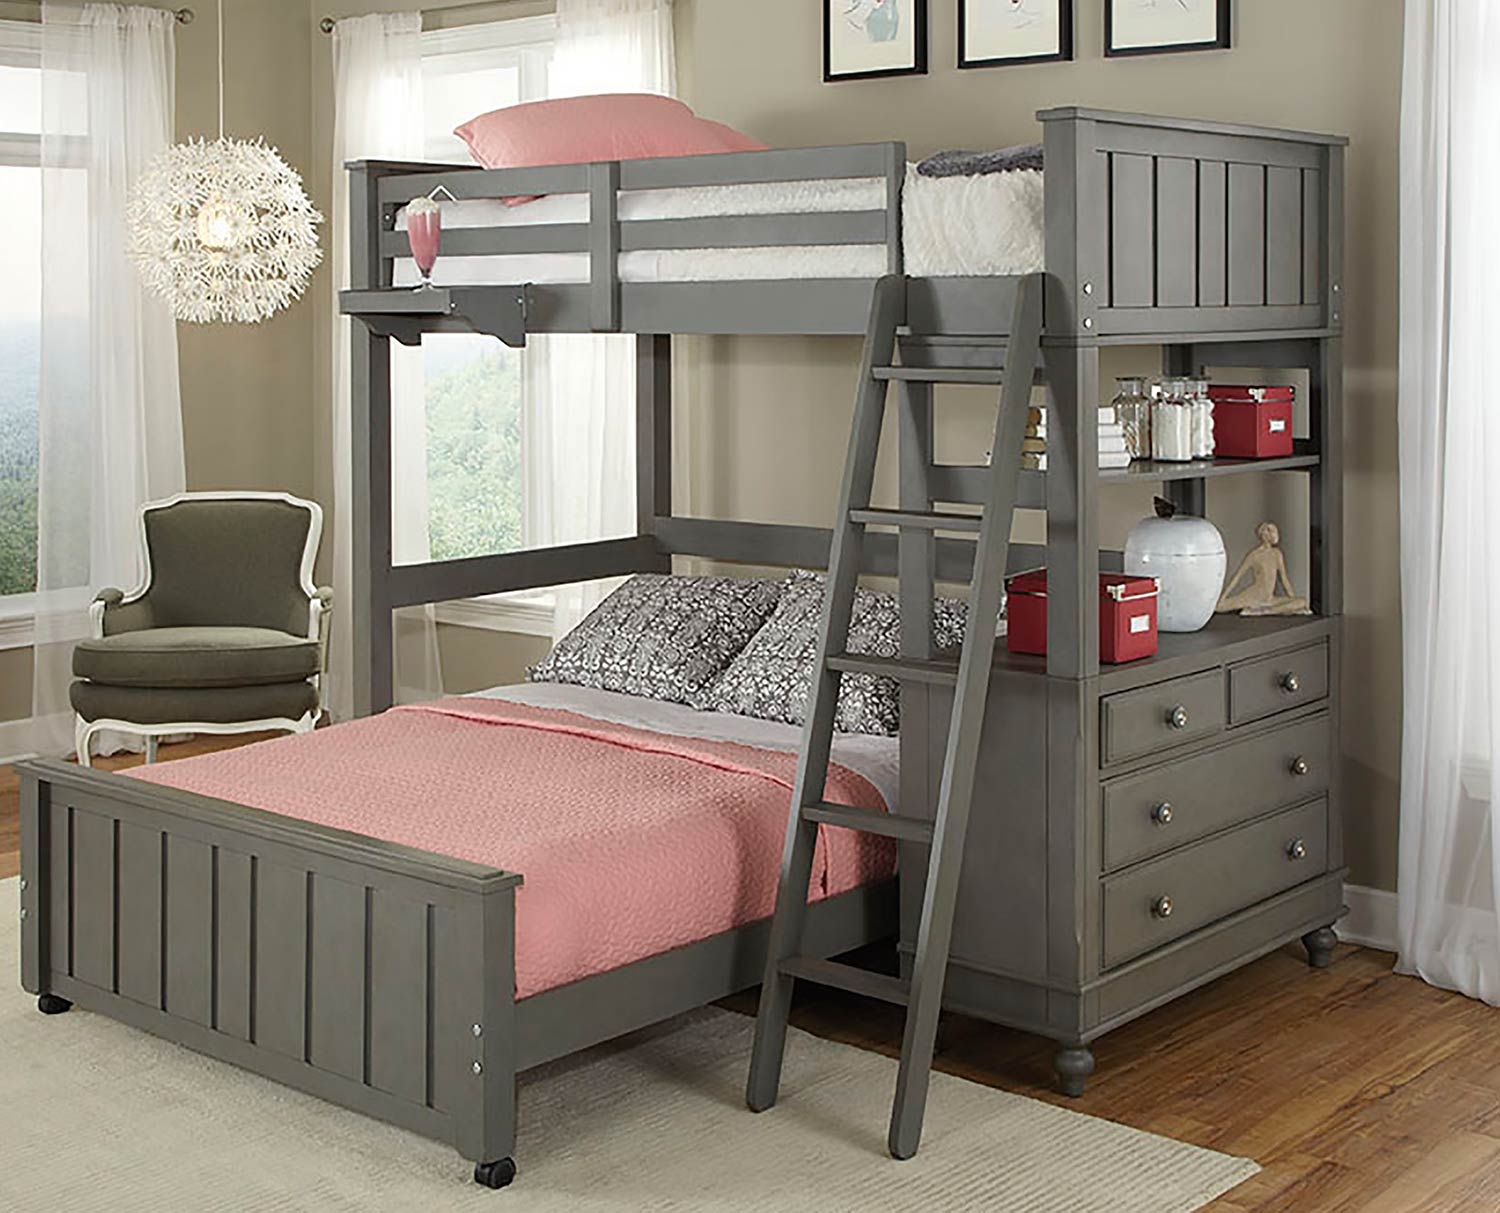 NE Kids Lake House Loft Bed with Full Lower Bed - Stone